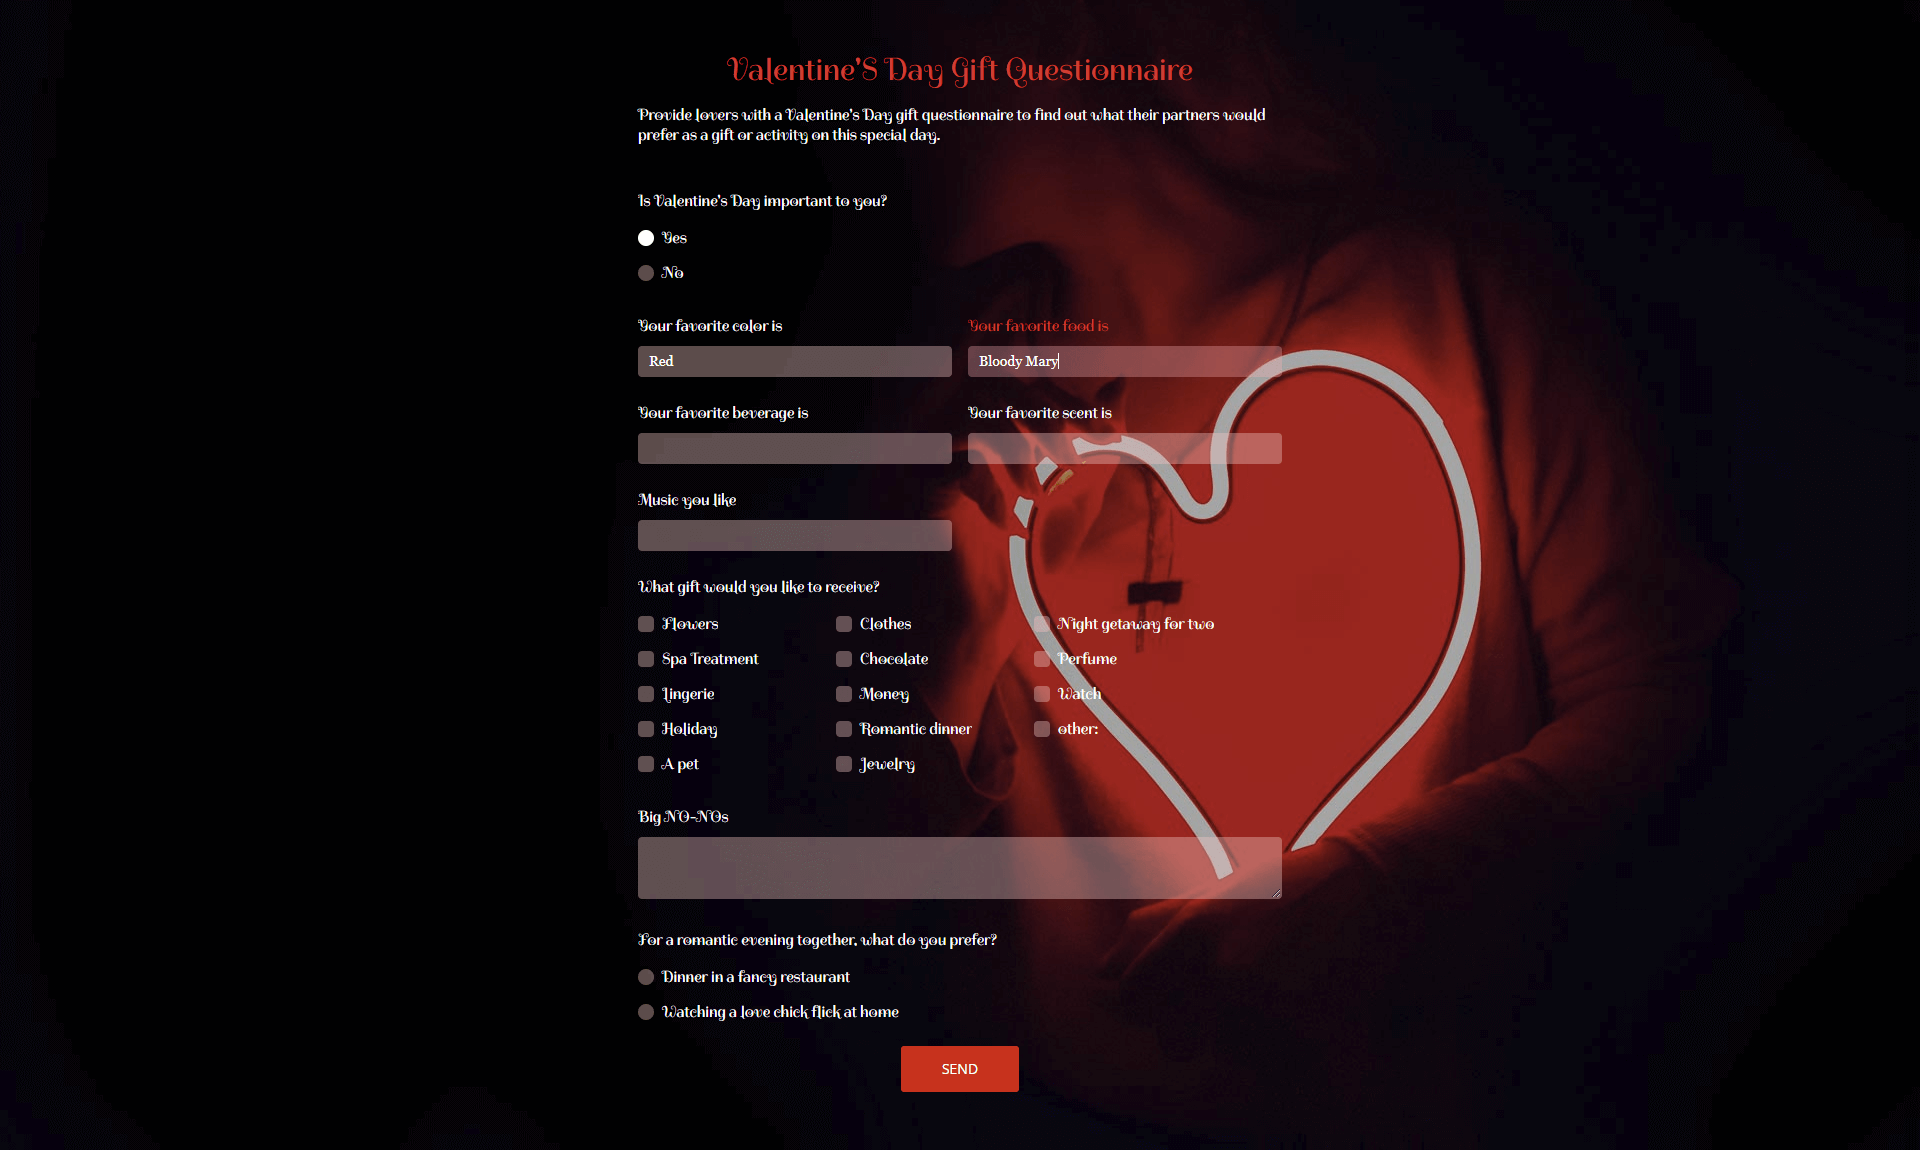 Valentine's Day gift questionnaire